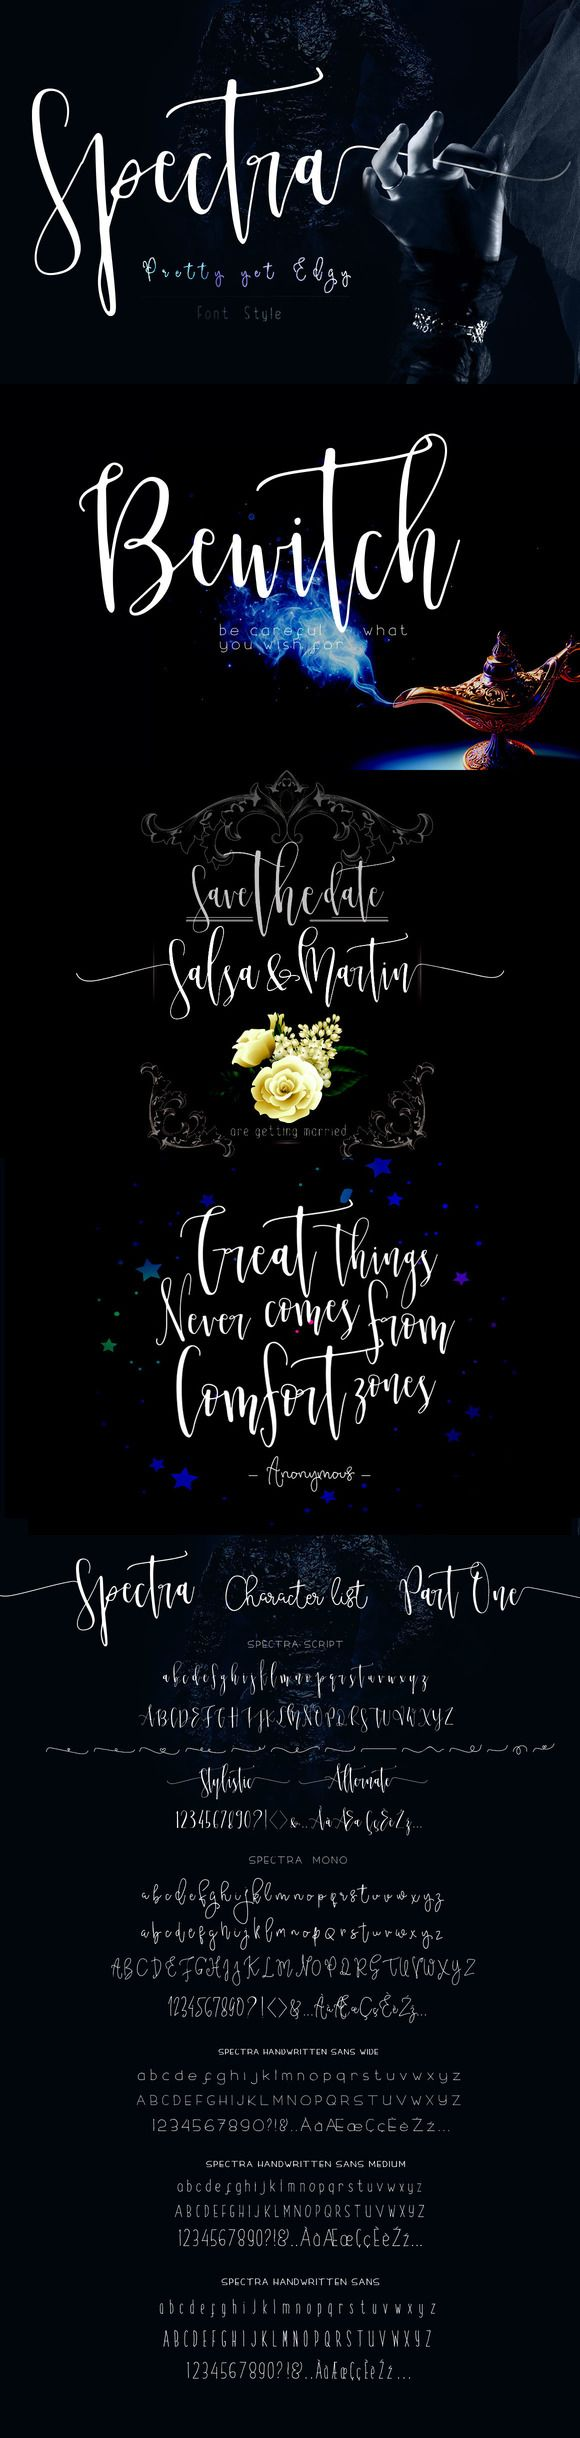 Spectra Font Family, Opening Sale by mycandythemes on @creativemarket